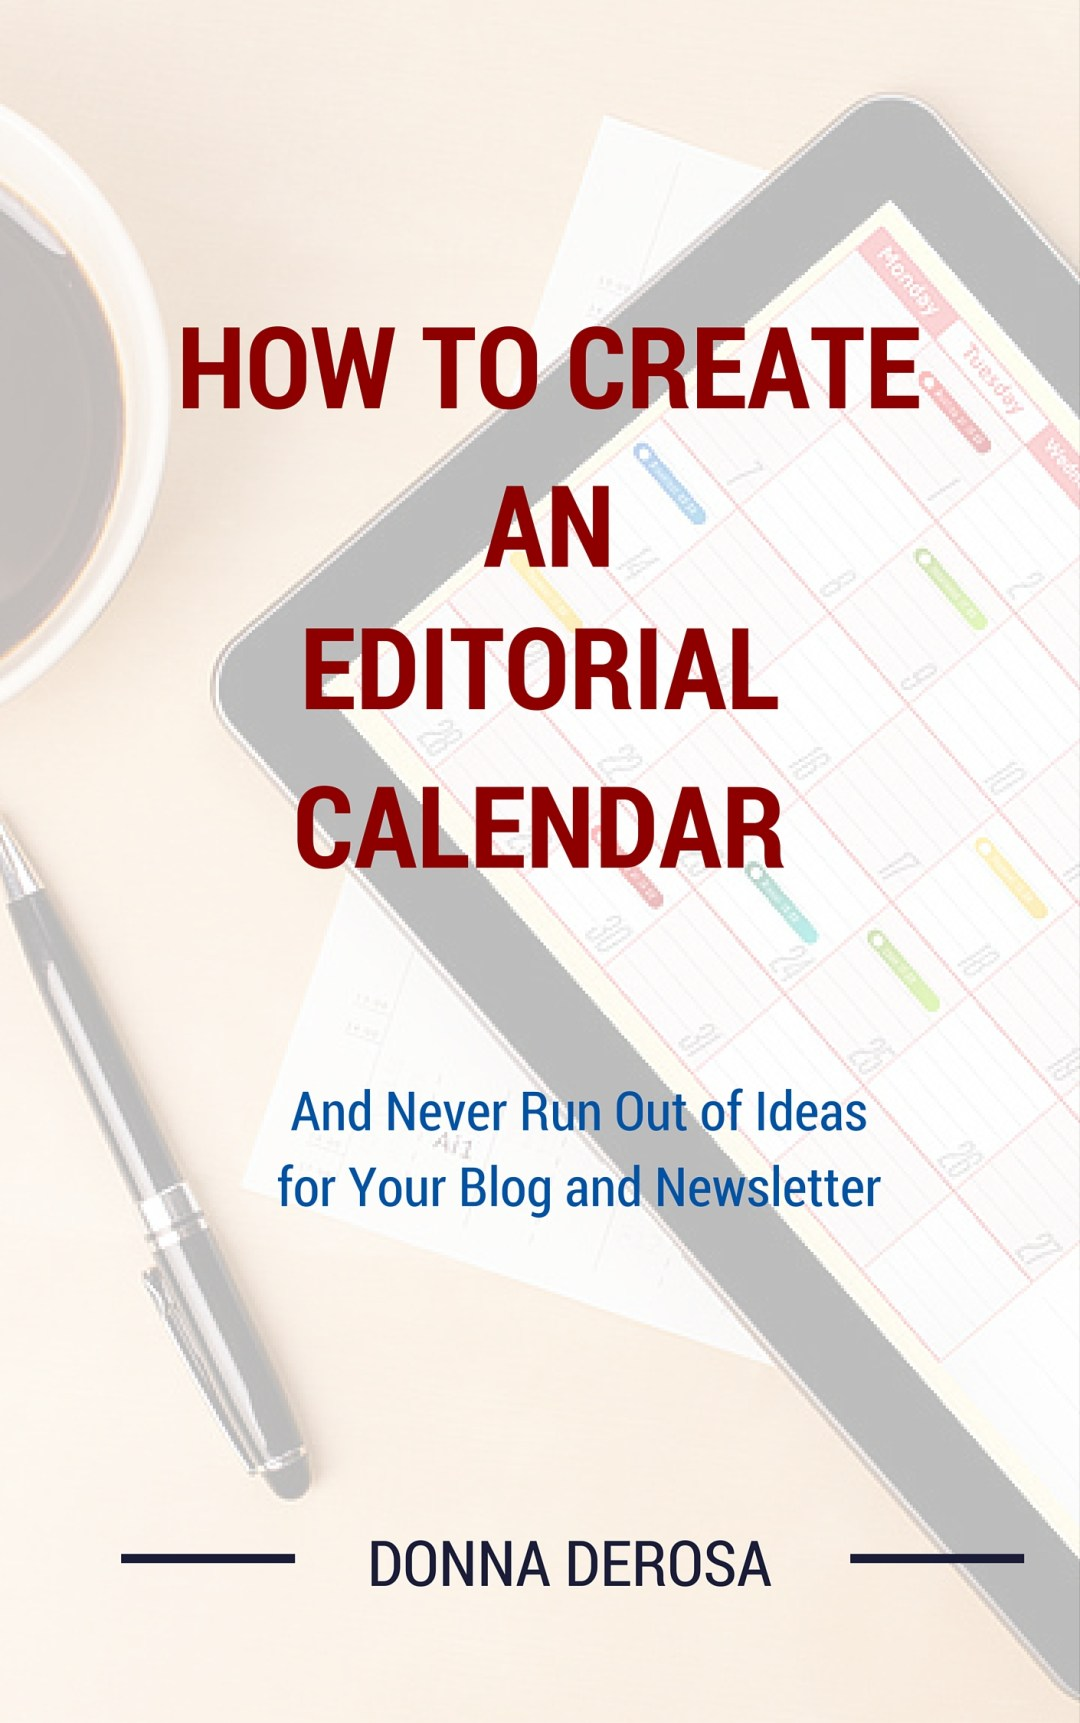 How To Create an Editorial Calendar by Donna DeRosa